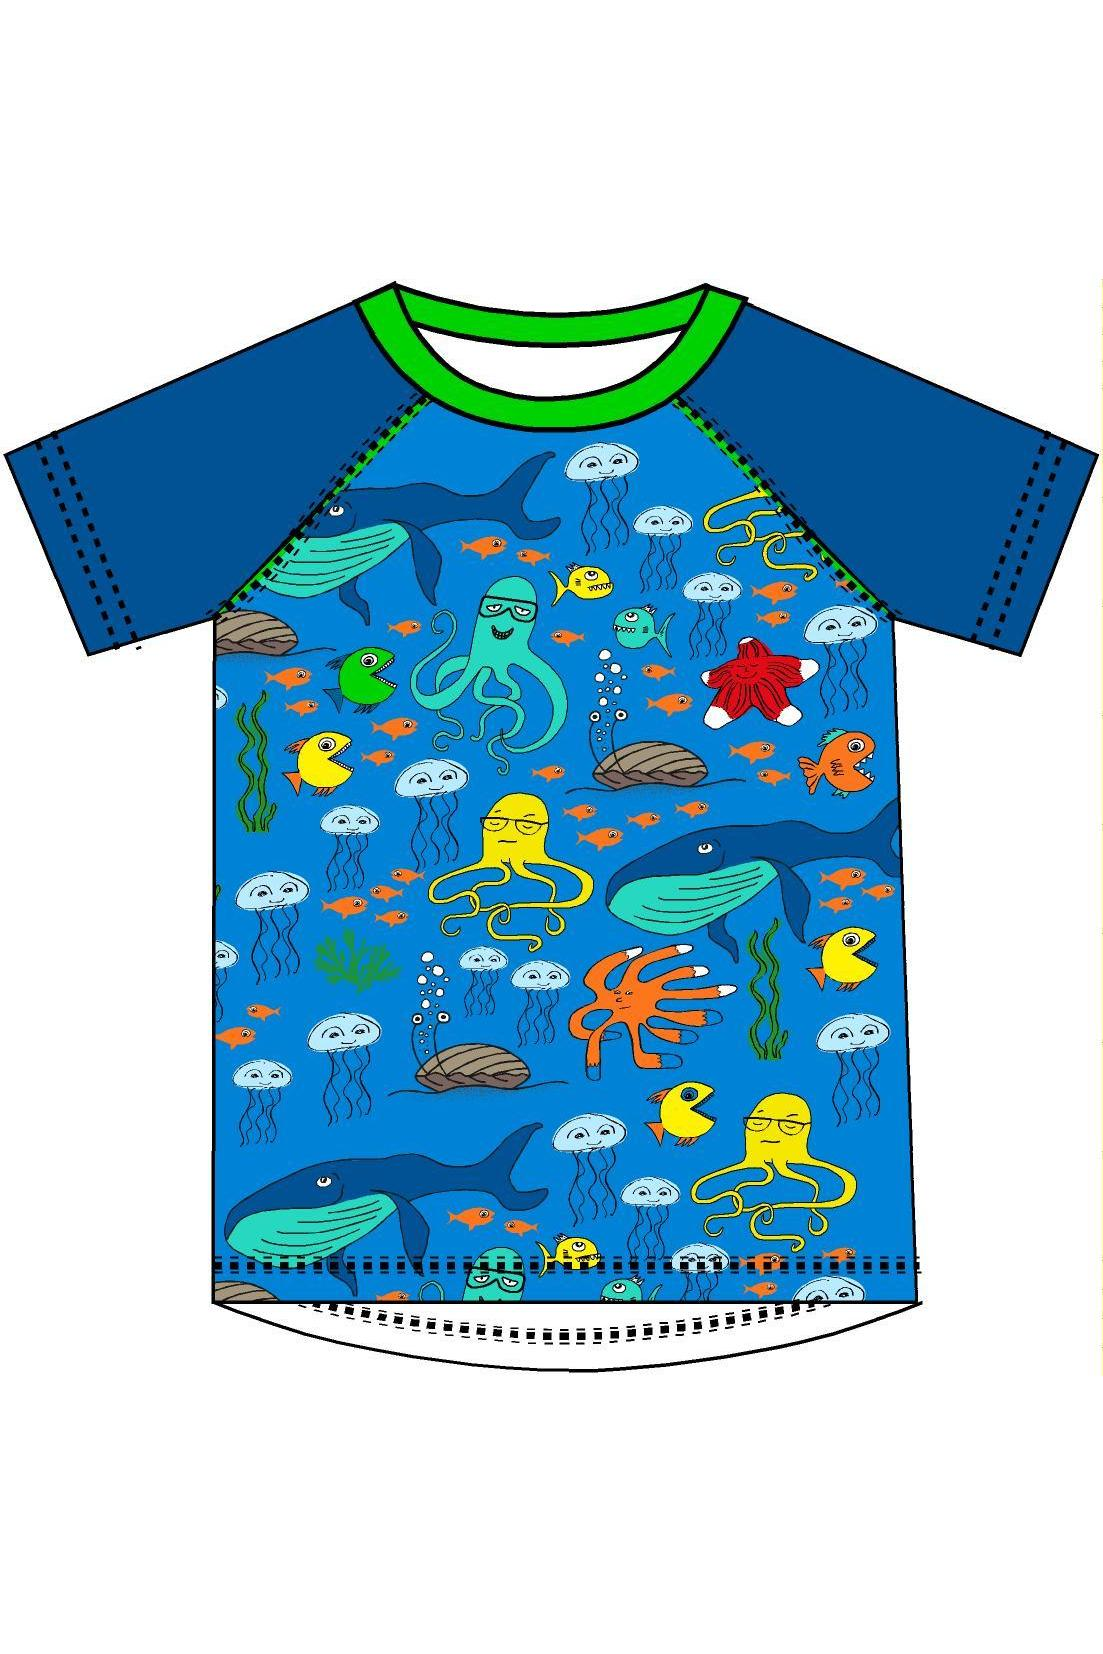 Short Sleeve Sea Life Blue Raglan Top - DUNS Fashion - Snugglefox